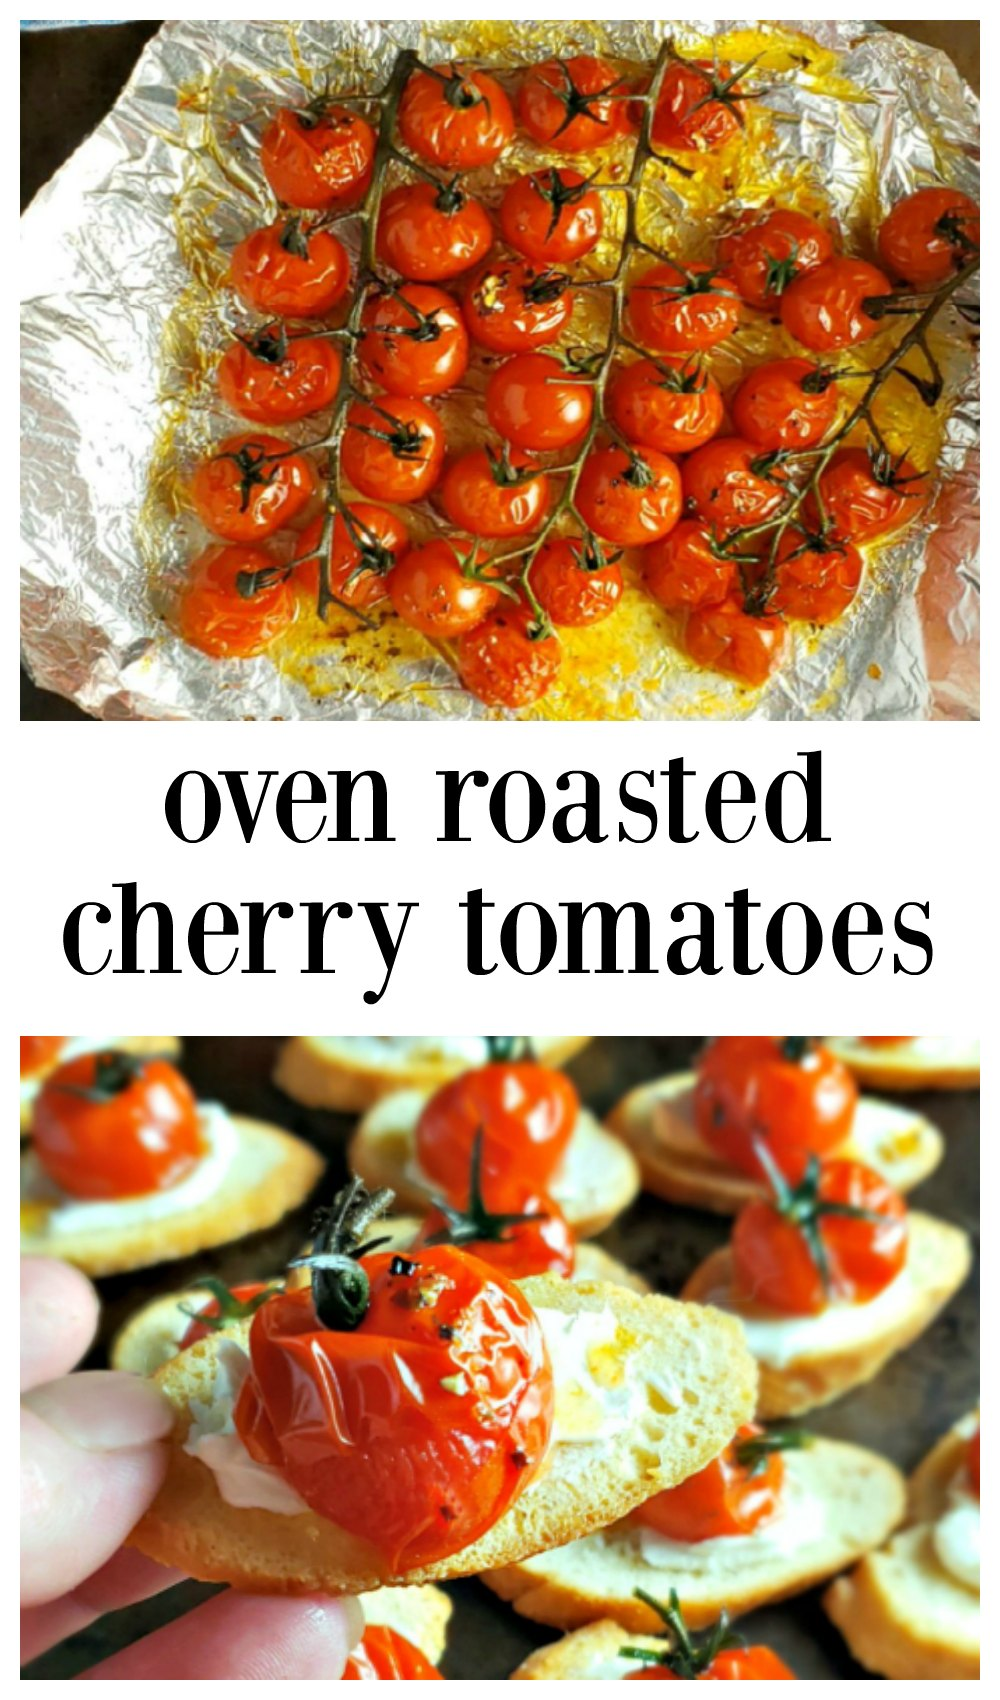 Oven Roasted Cherry Tomatoes are so simple, so easy, it's hard to believe they're so good! You'll see my easy method & ways to use these beauties! #CherryTomatoes #OvenRoastedCherryTomatoes #EasyRoastedCherryTomatoes